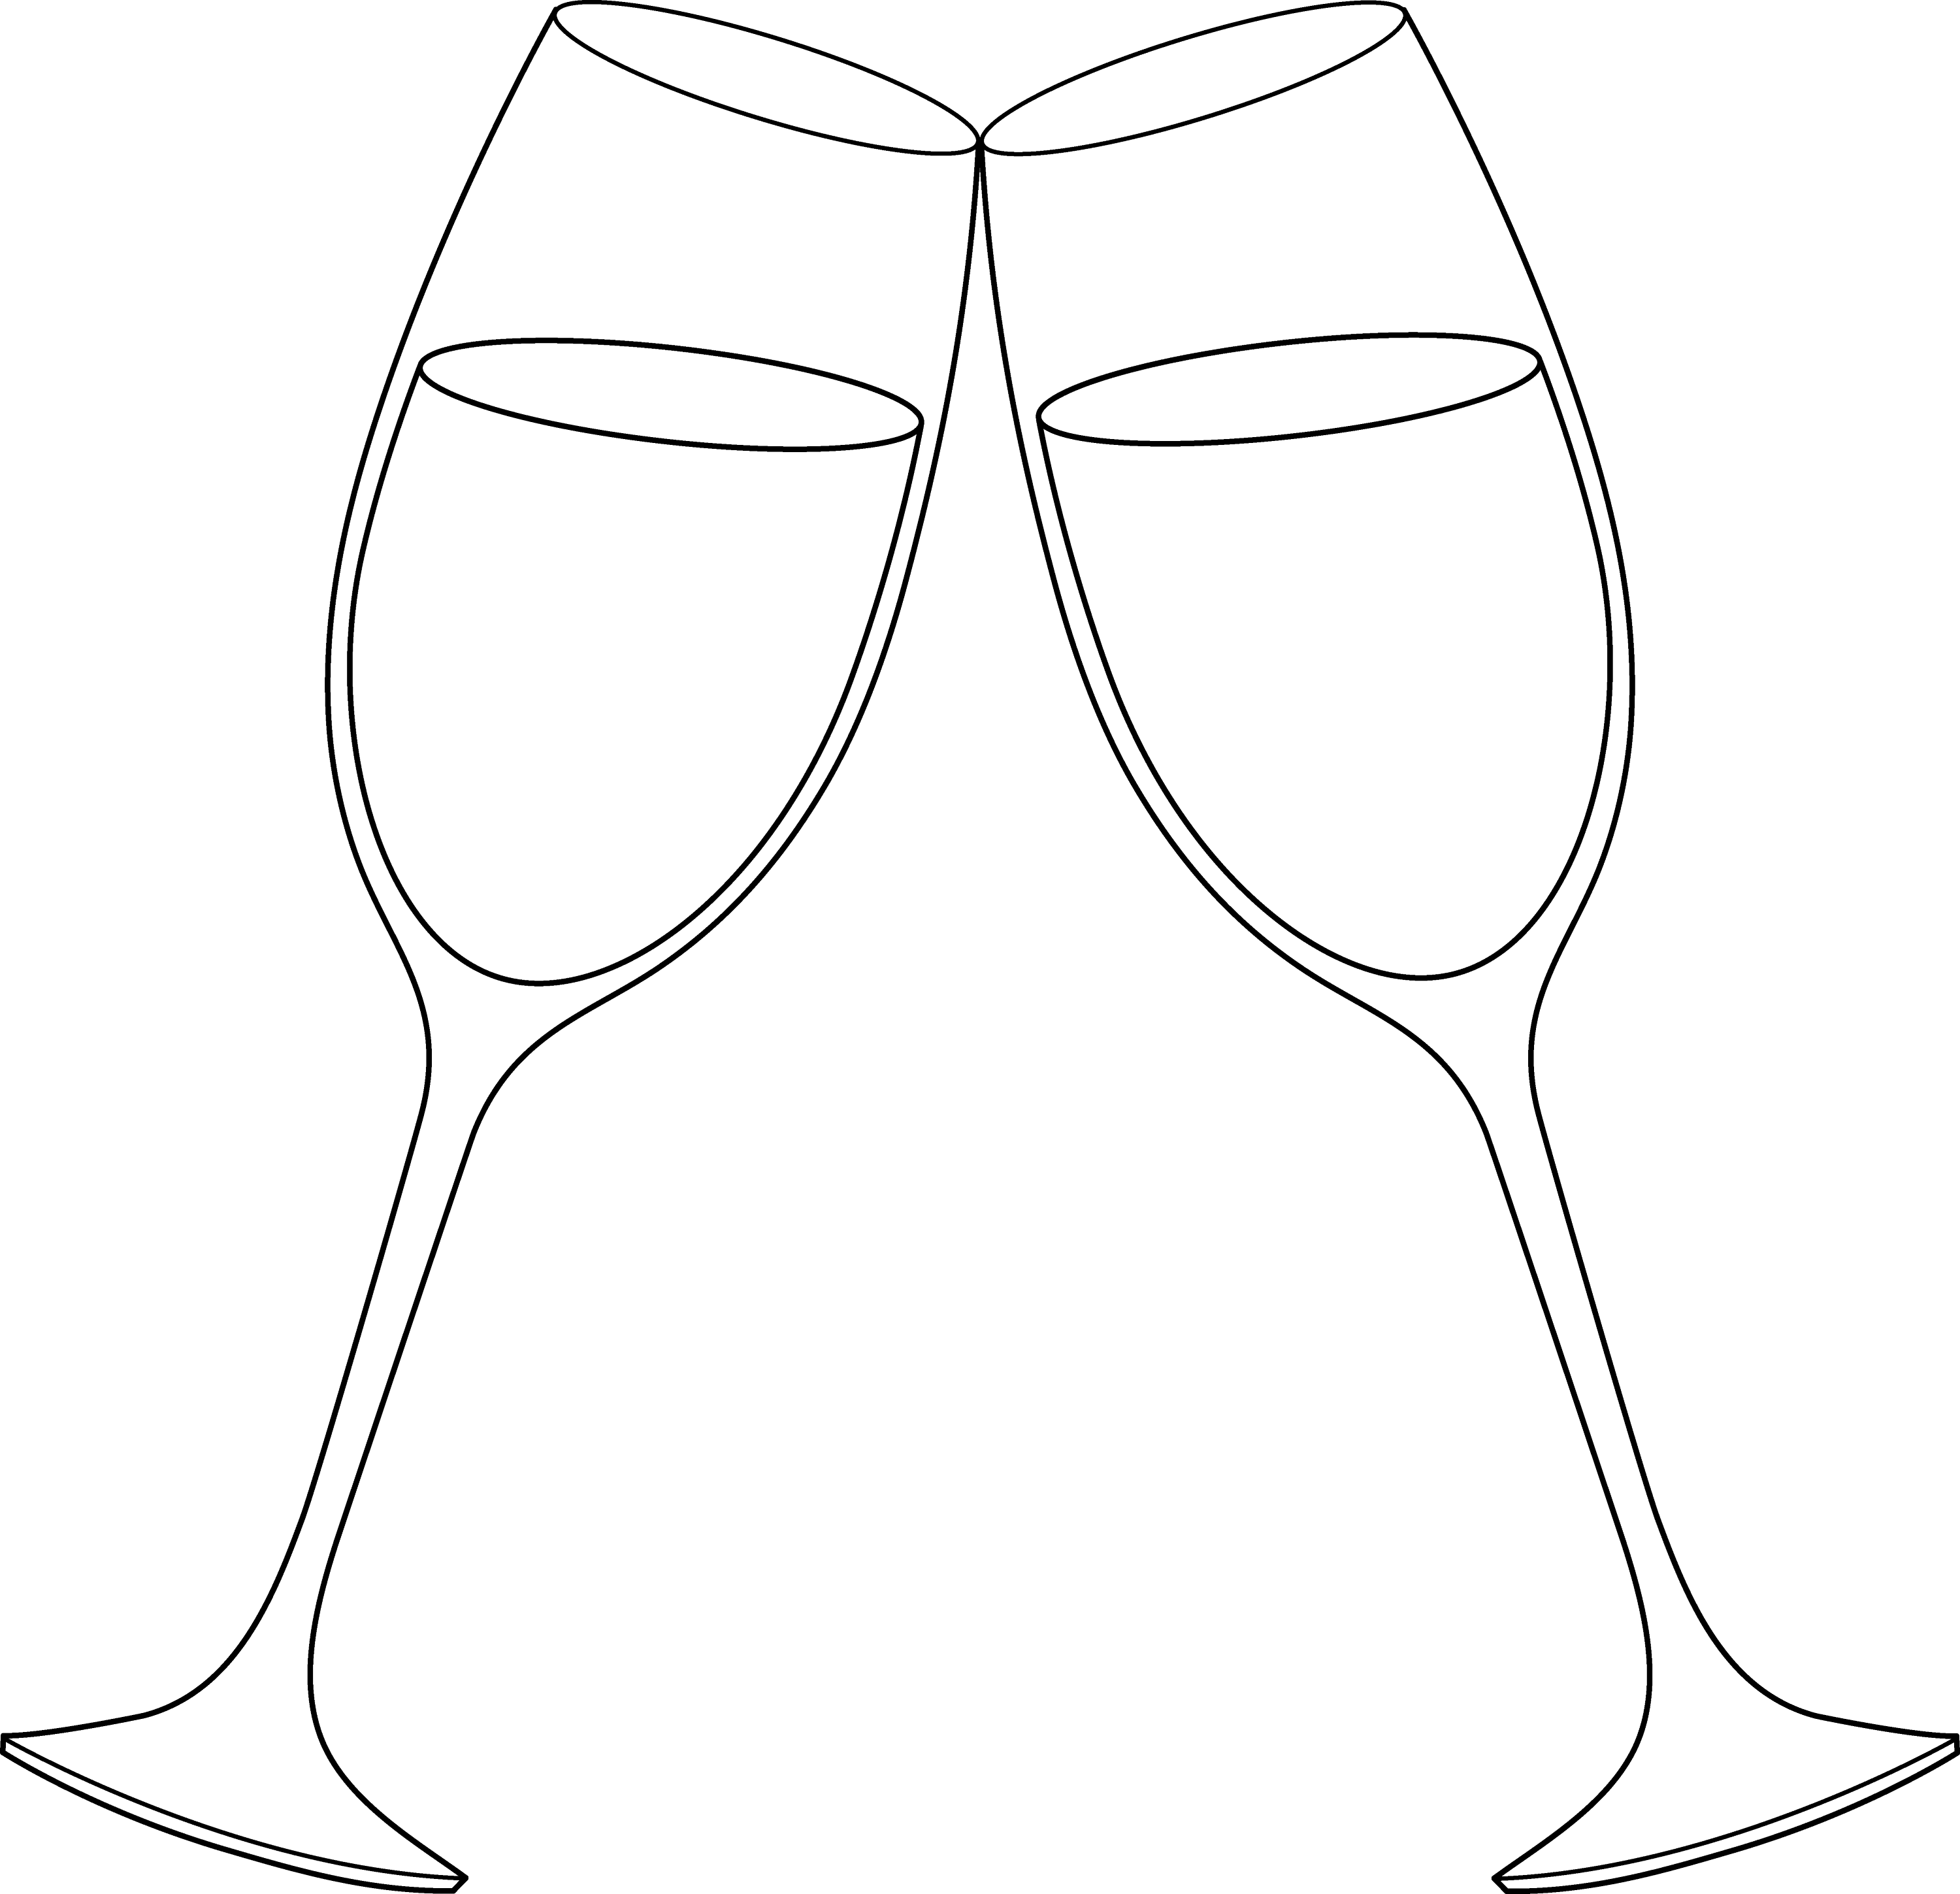 Line Drawing Glasses : Champagne glasses line art free clip